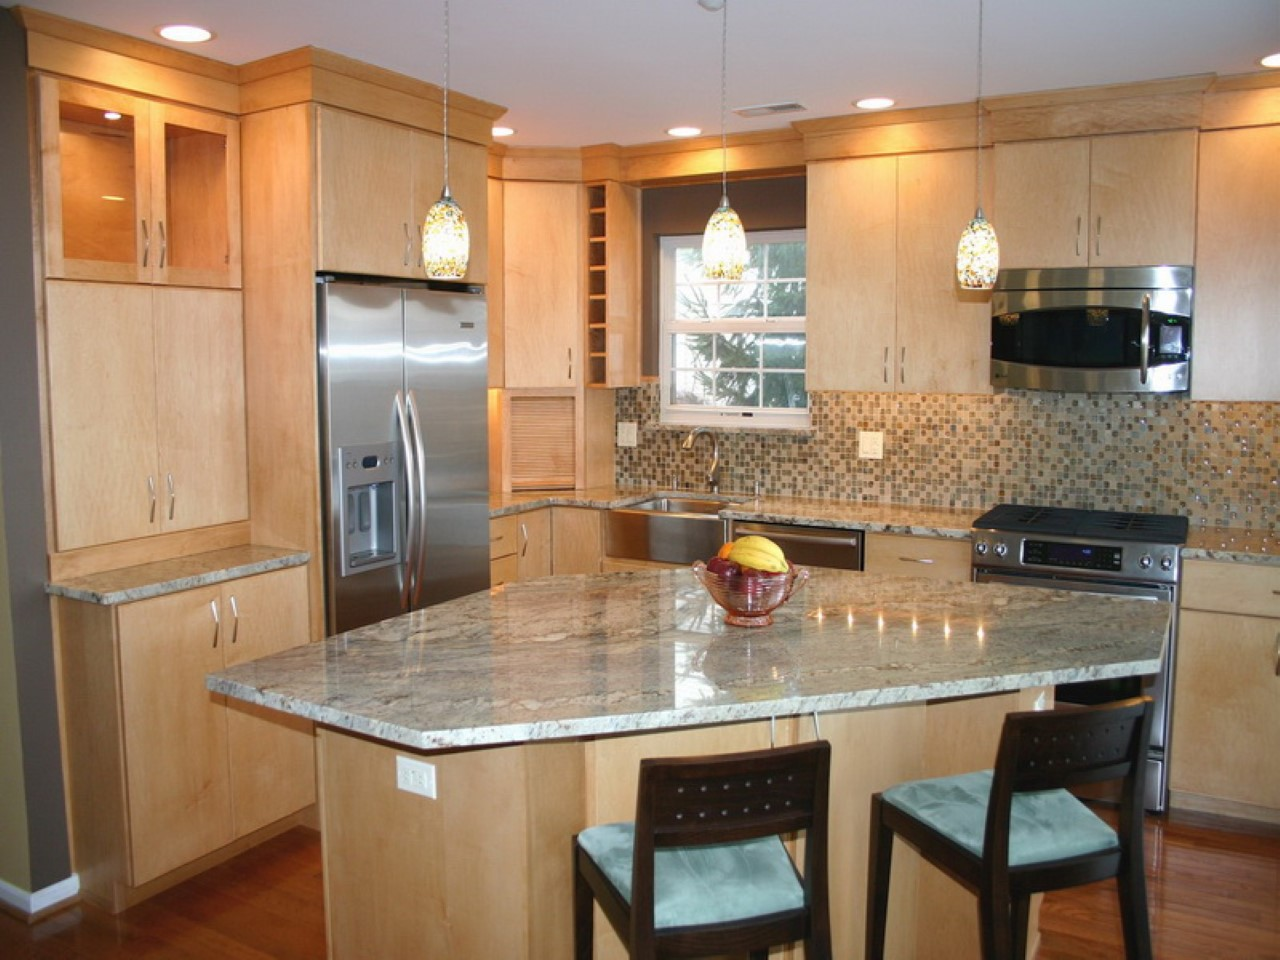 Best small kitchen design with island for perfect for The perfect kitchen island